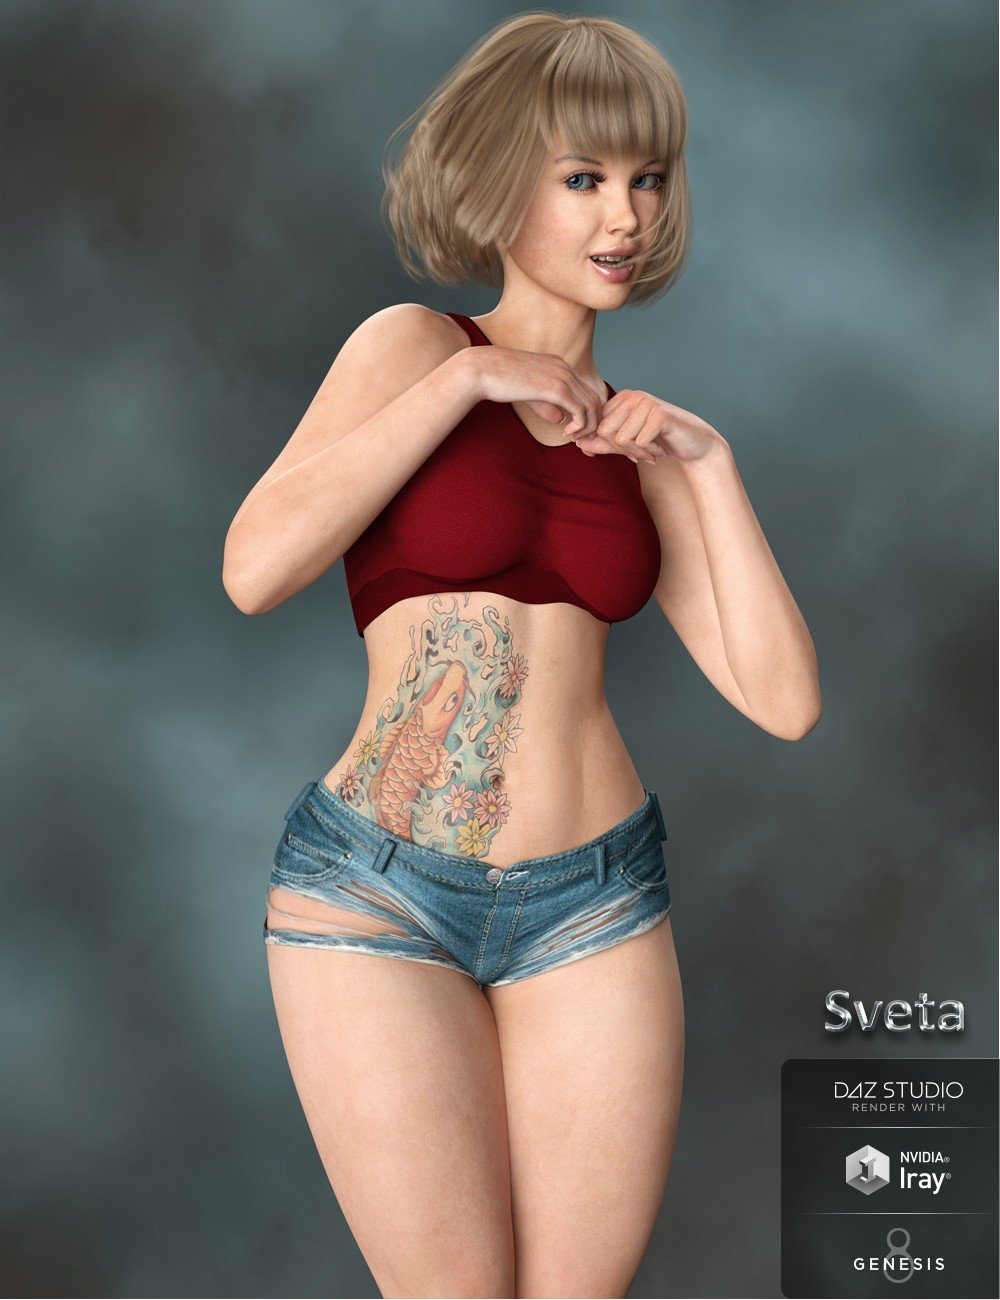 Sveta for Genesis 8 Female